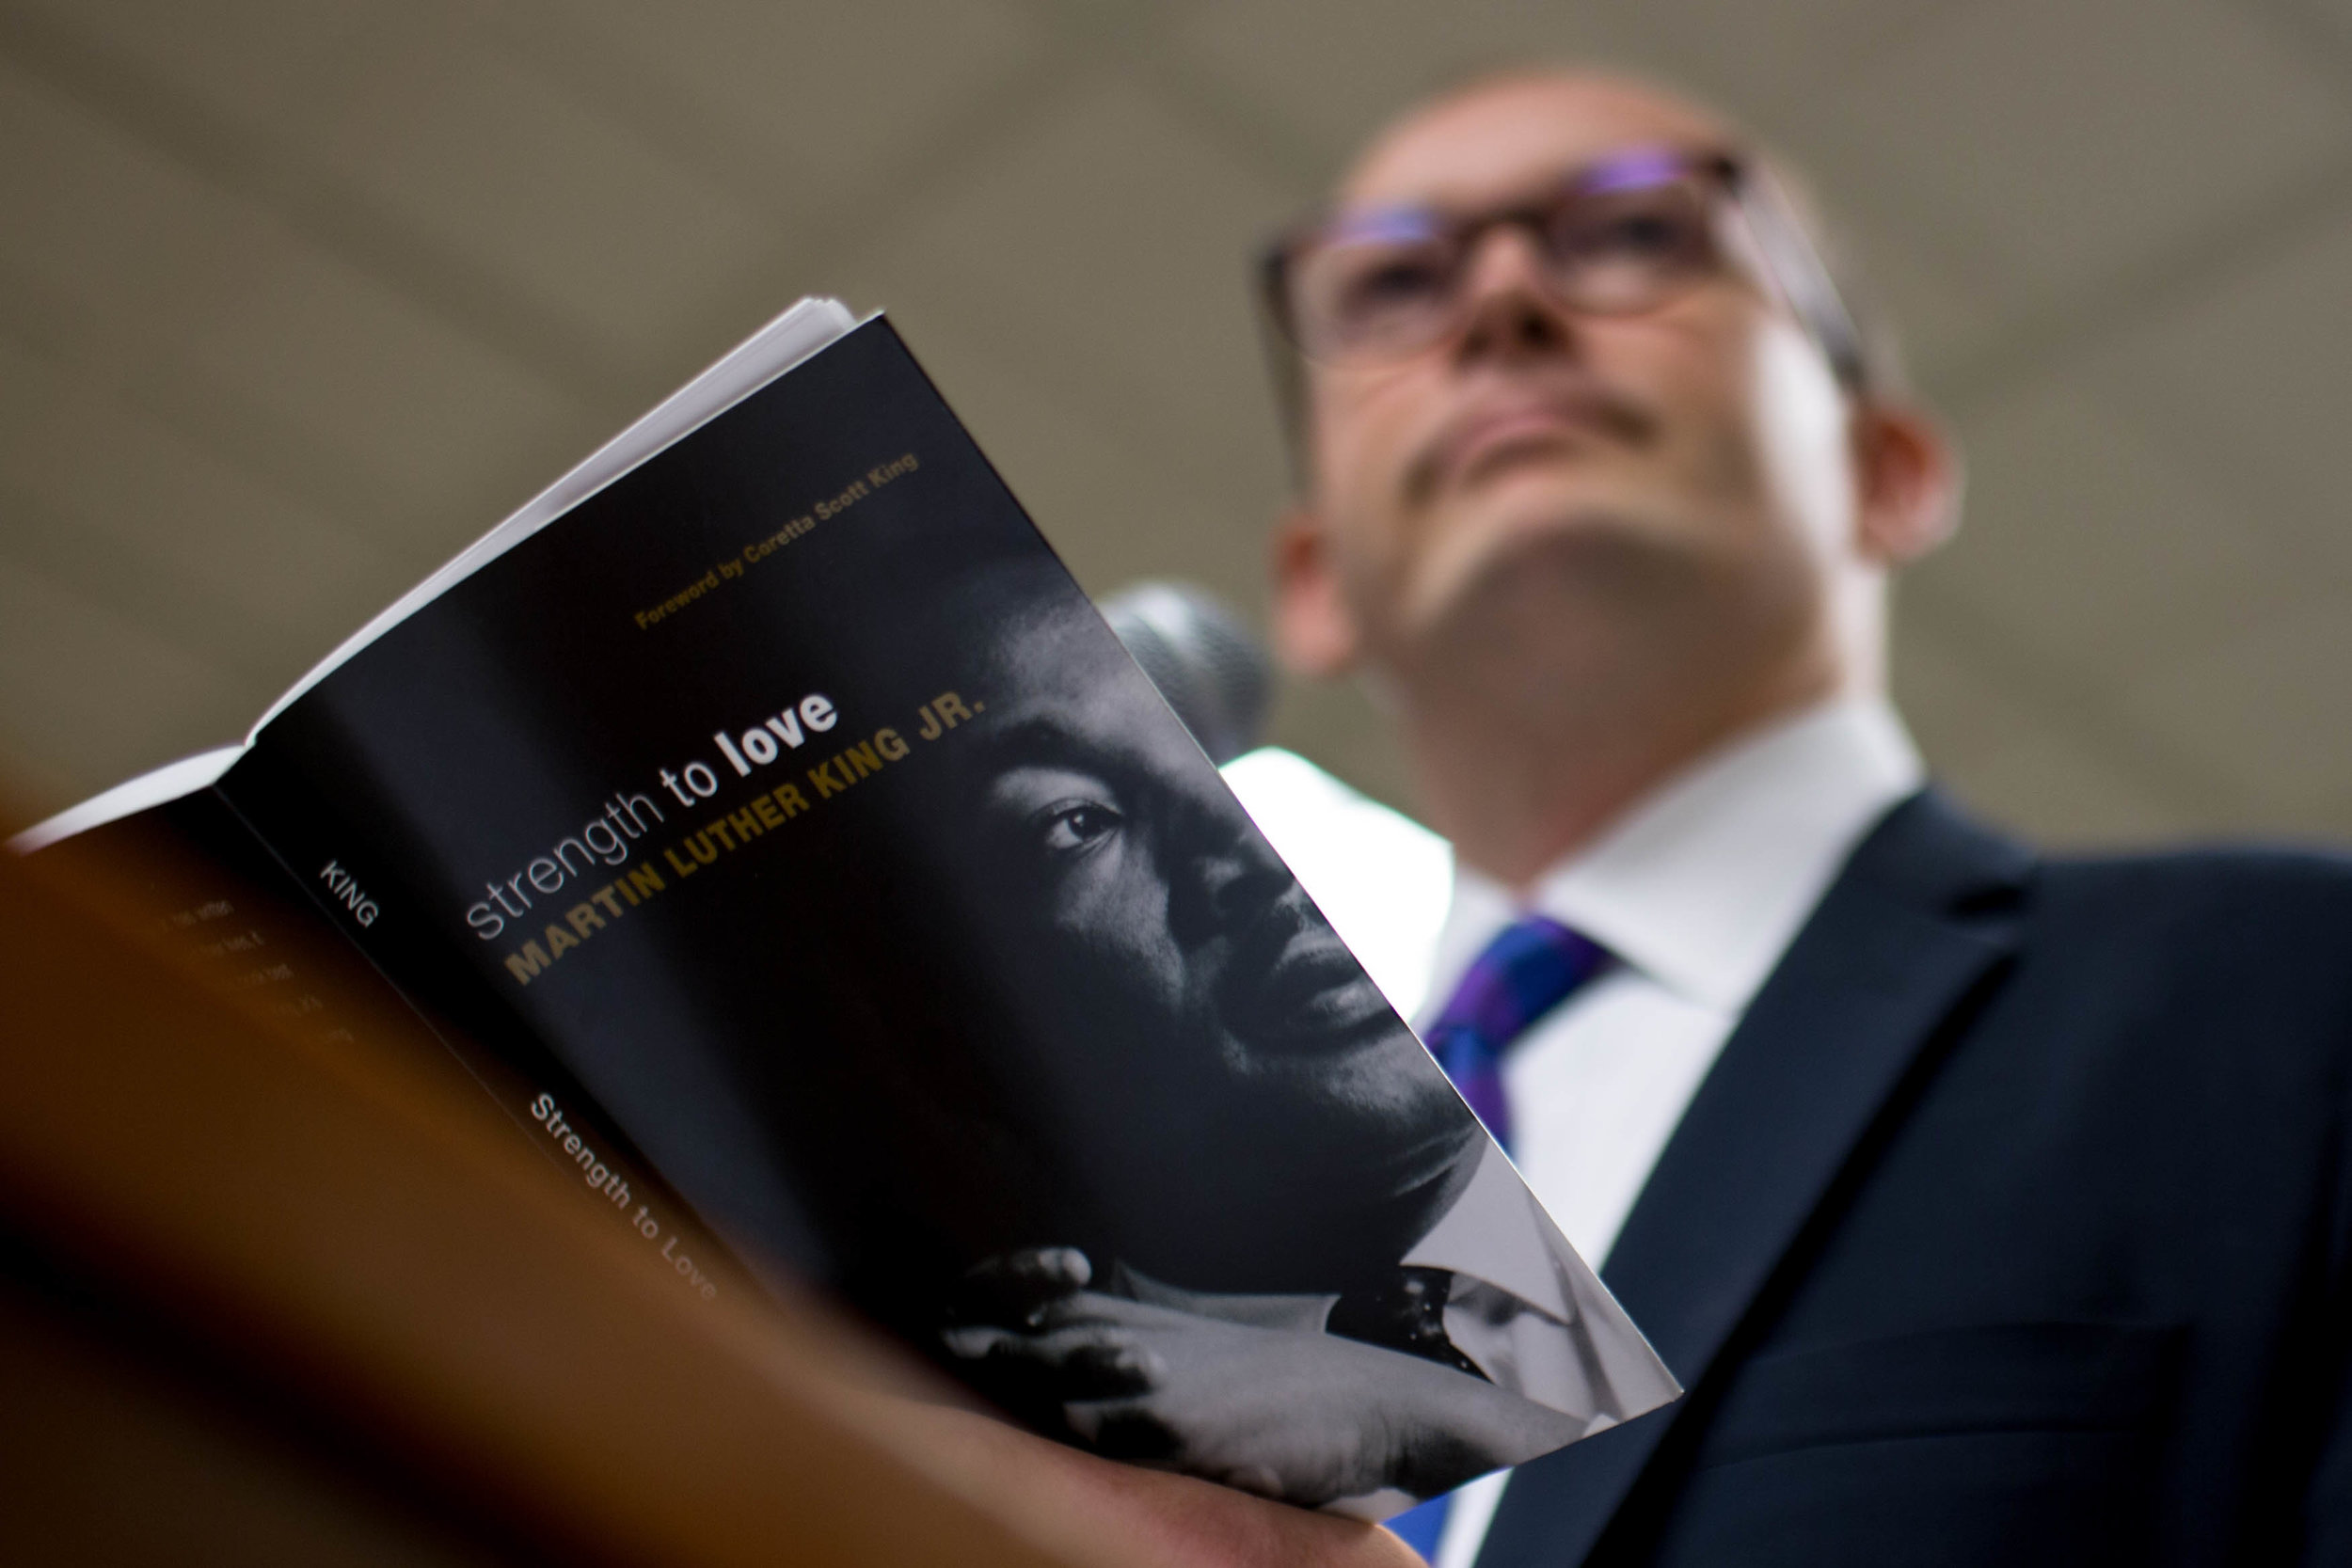 """The Rev. Scott Dickison teaches from a book of sermons by Martin Luther King Jr. during a Sunday School class at the First Baptist Church of Christ, a predominantly white congregation, in Macon, Ga., on Sunday, July 10, 2016. This class was held days after the fatal police shootings of Alton Sterling in Louisiana and Philando Castile in Minnesota, and the fatal ambush on Dallas police. """"It's weeks like these when we need more than ever to be with God's people,"""" Dickison told the roomful of congregants. (AP Photo/Branden Camp"""